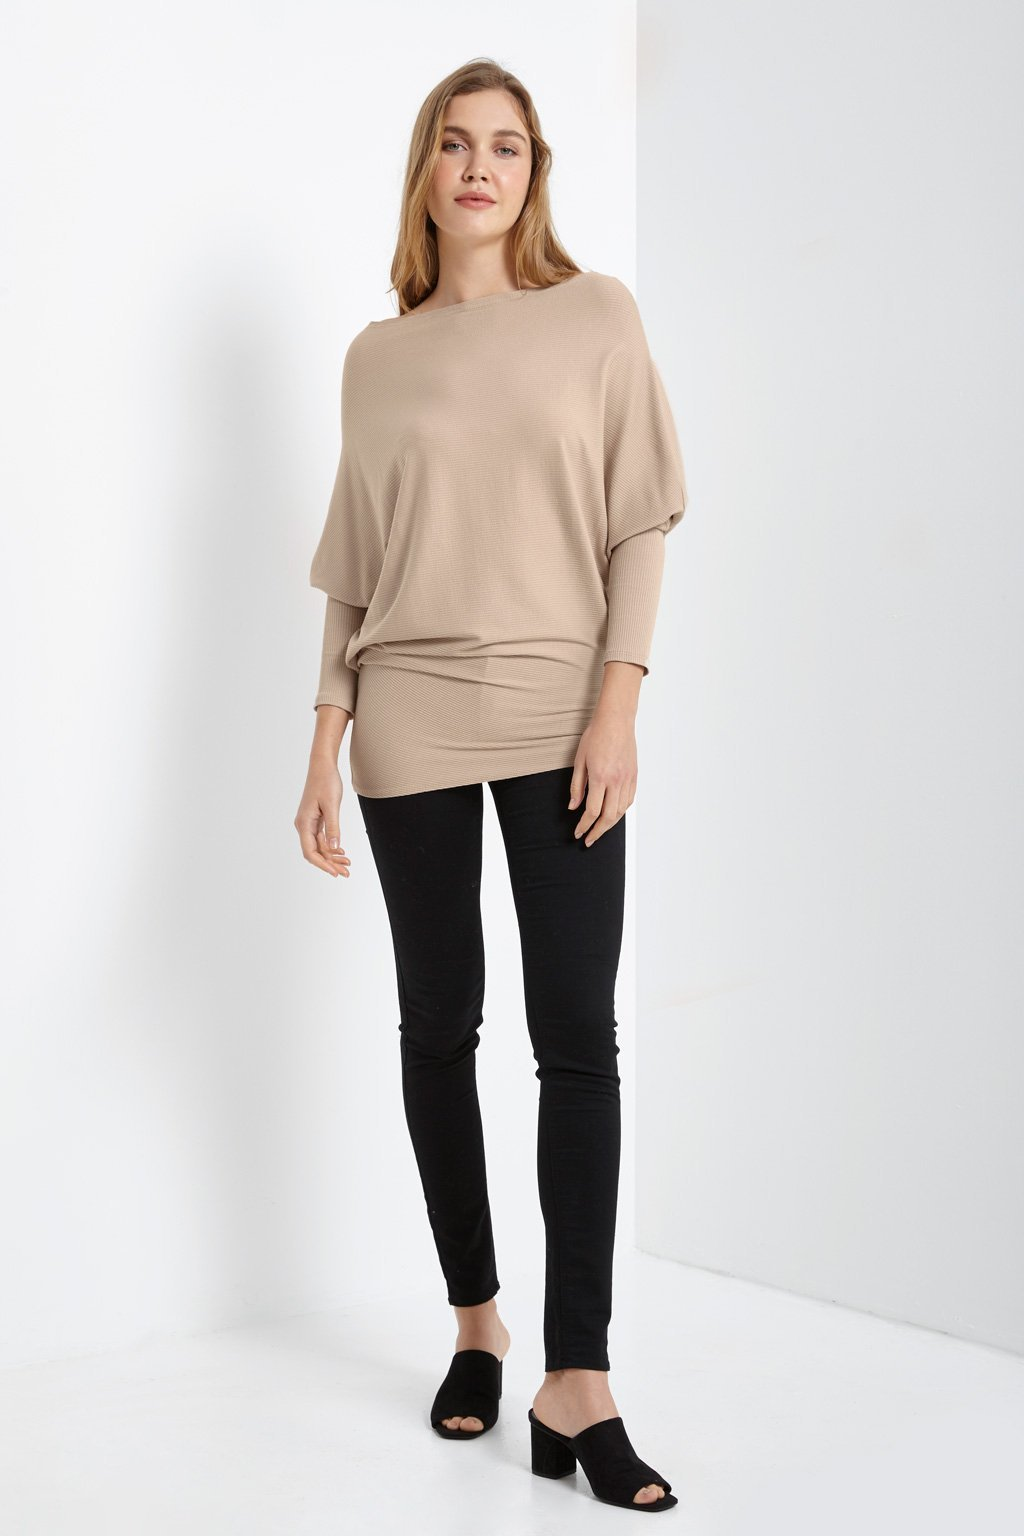 Poshsquare Tops Ribbed Asymmetrical Sweater Top